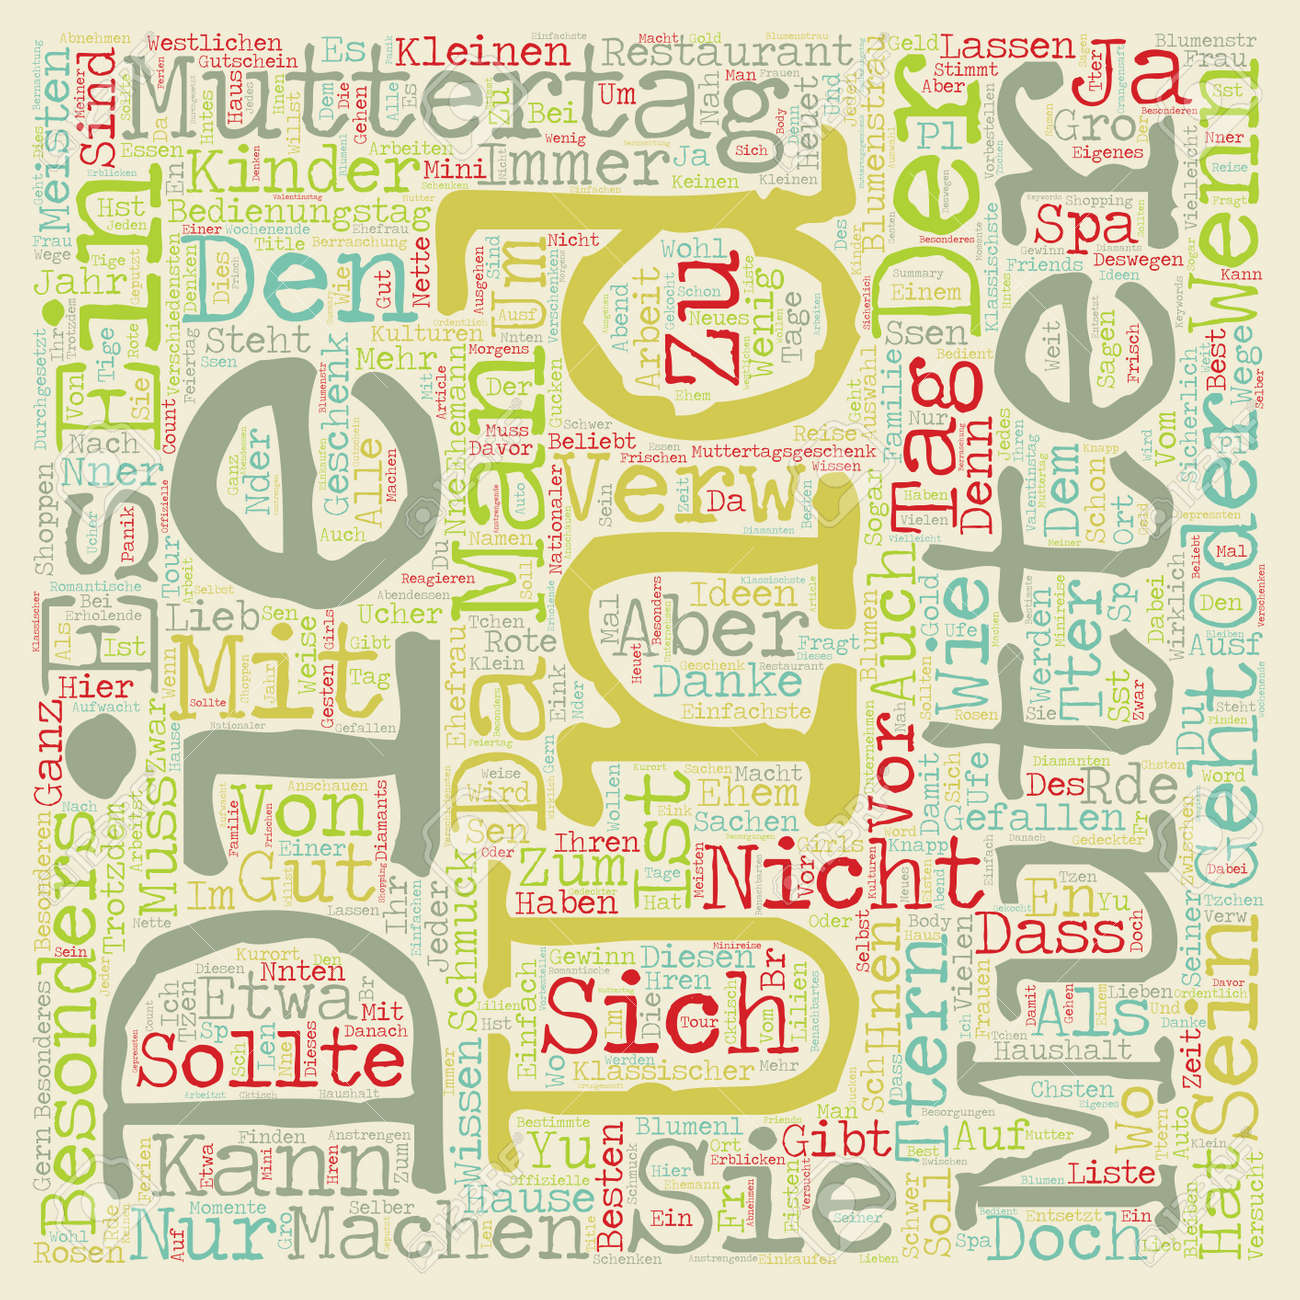 Geschenke Zum Muttertag Ideen Muttertag Geschenke Ideen Text Background Wordcloud Concept